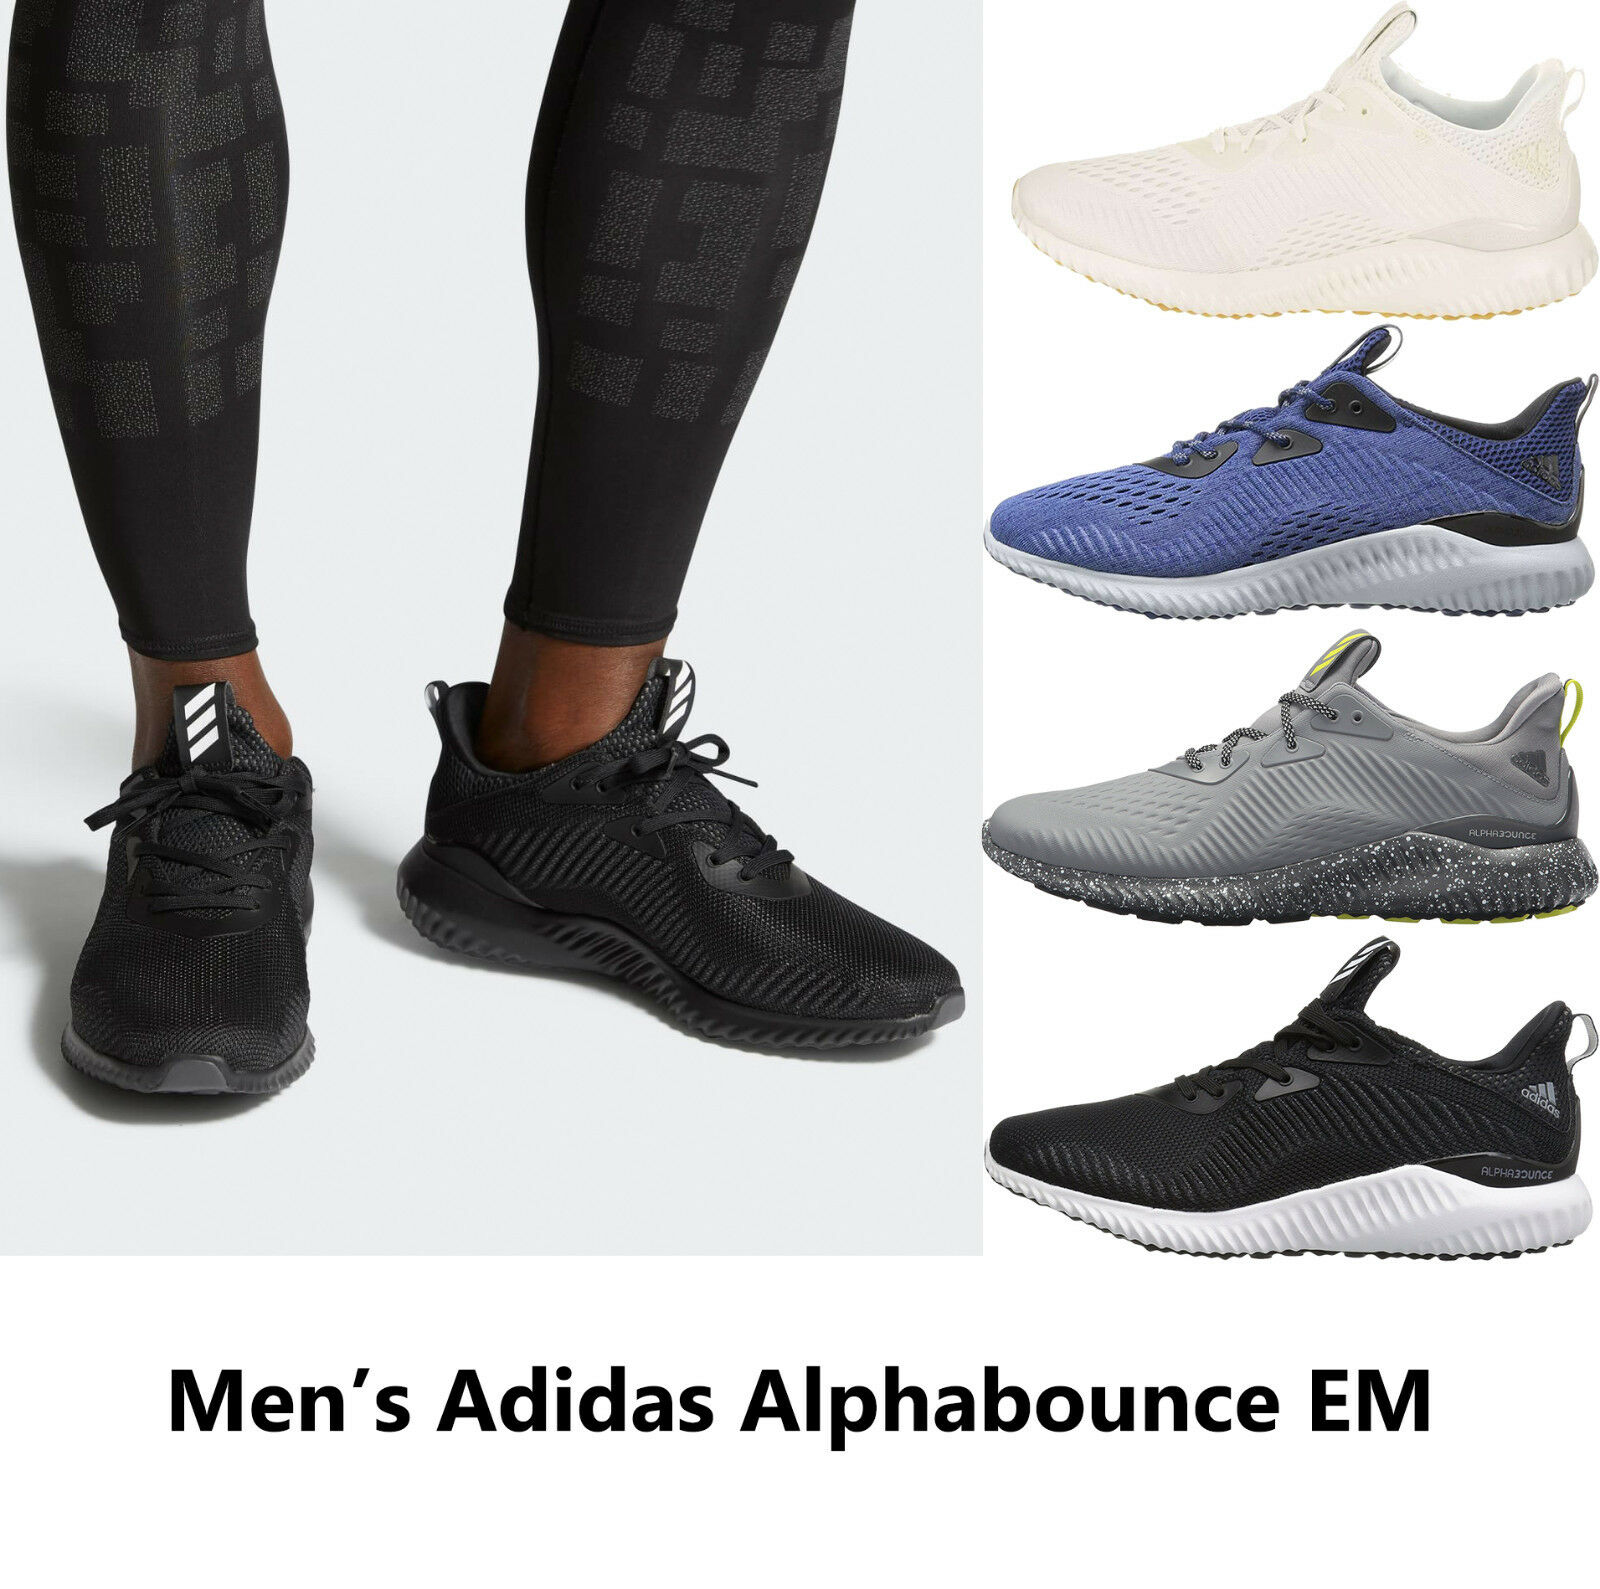 Mens ADIDAS ALPHABOUNCE EM Running shoes Mens Sneakers NEW